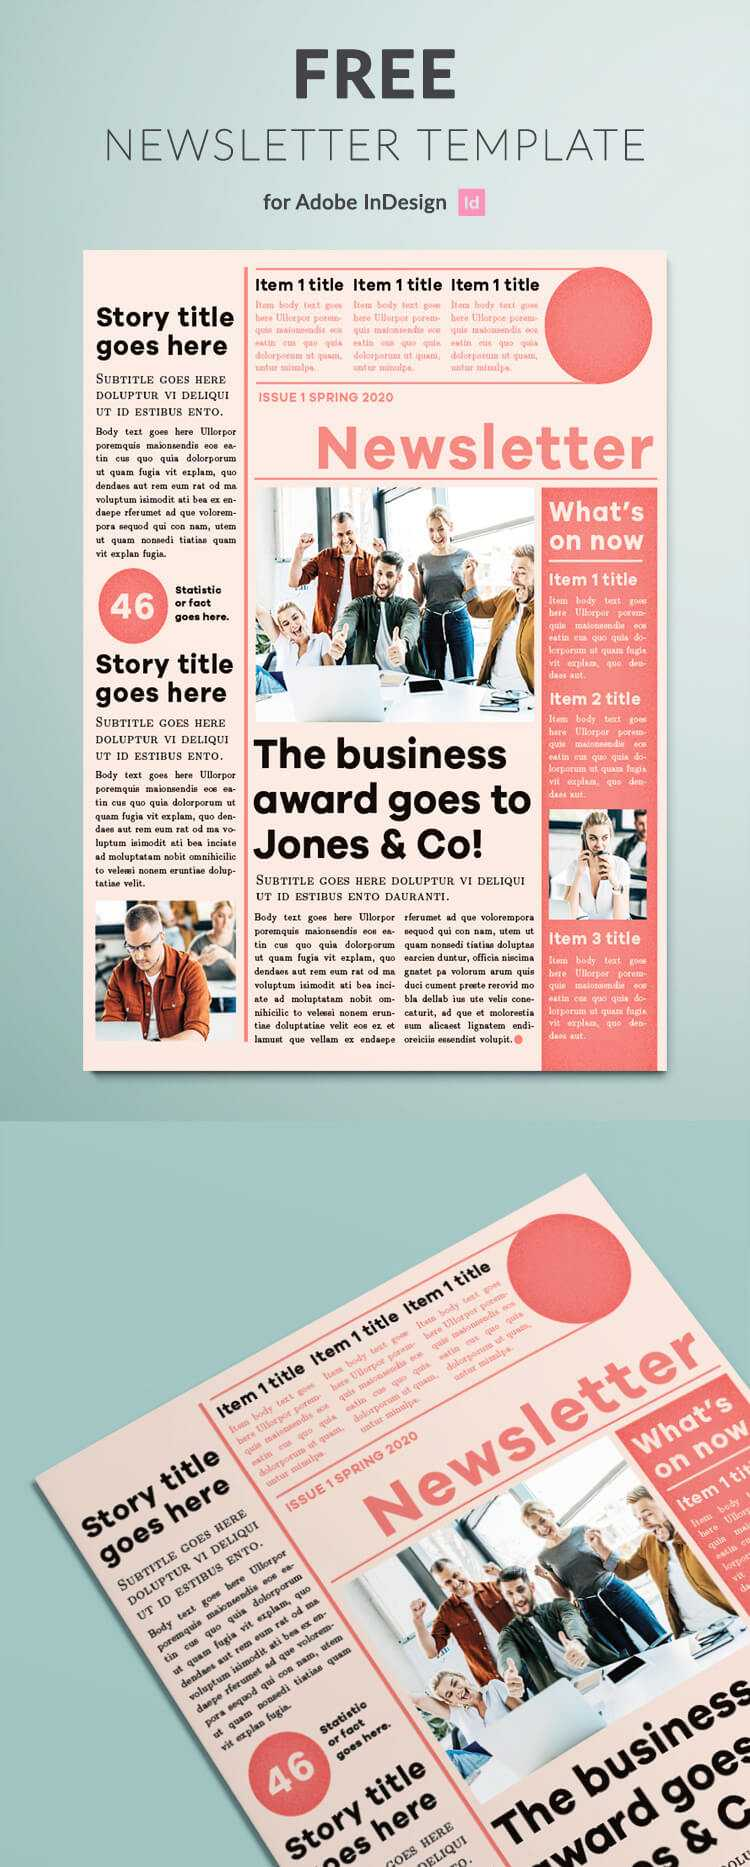 003 Newsletter Template Ideas Adobe Indesign Templates Free Inside Free Indesign Newsletter Templates